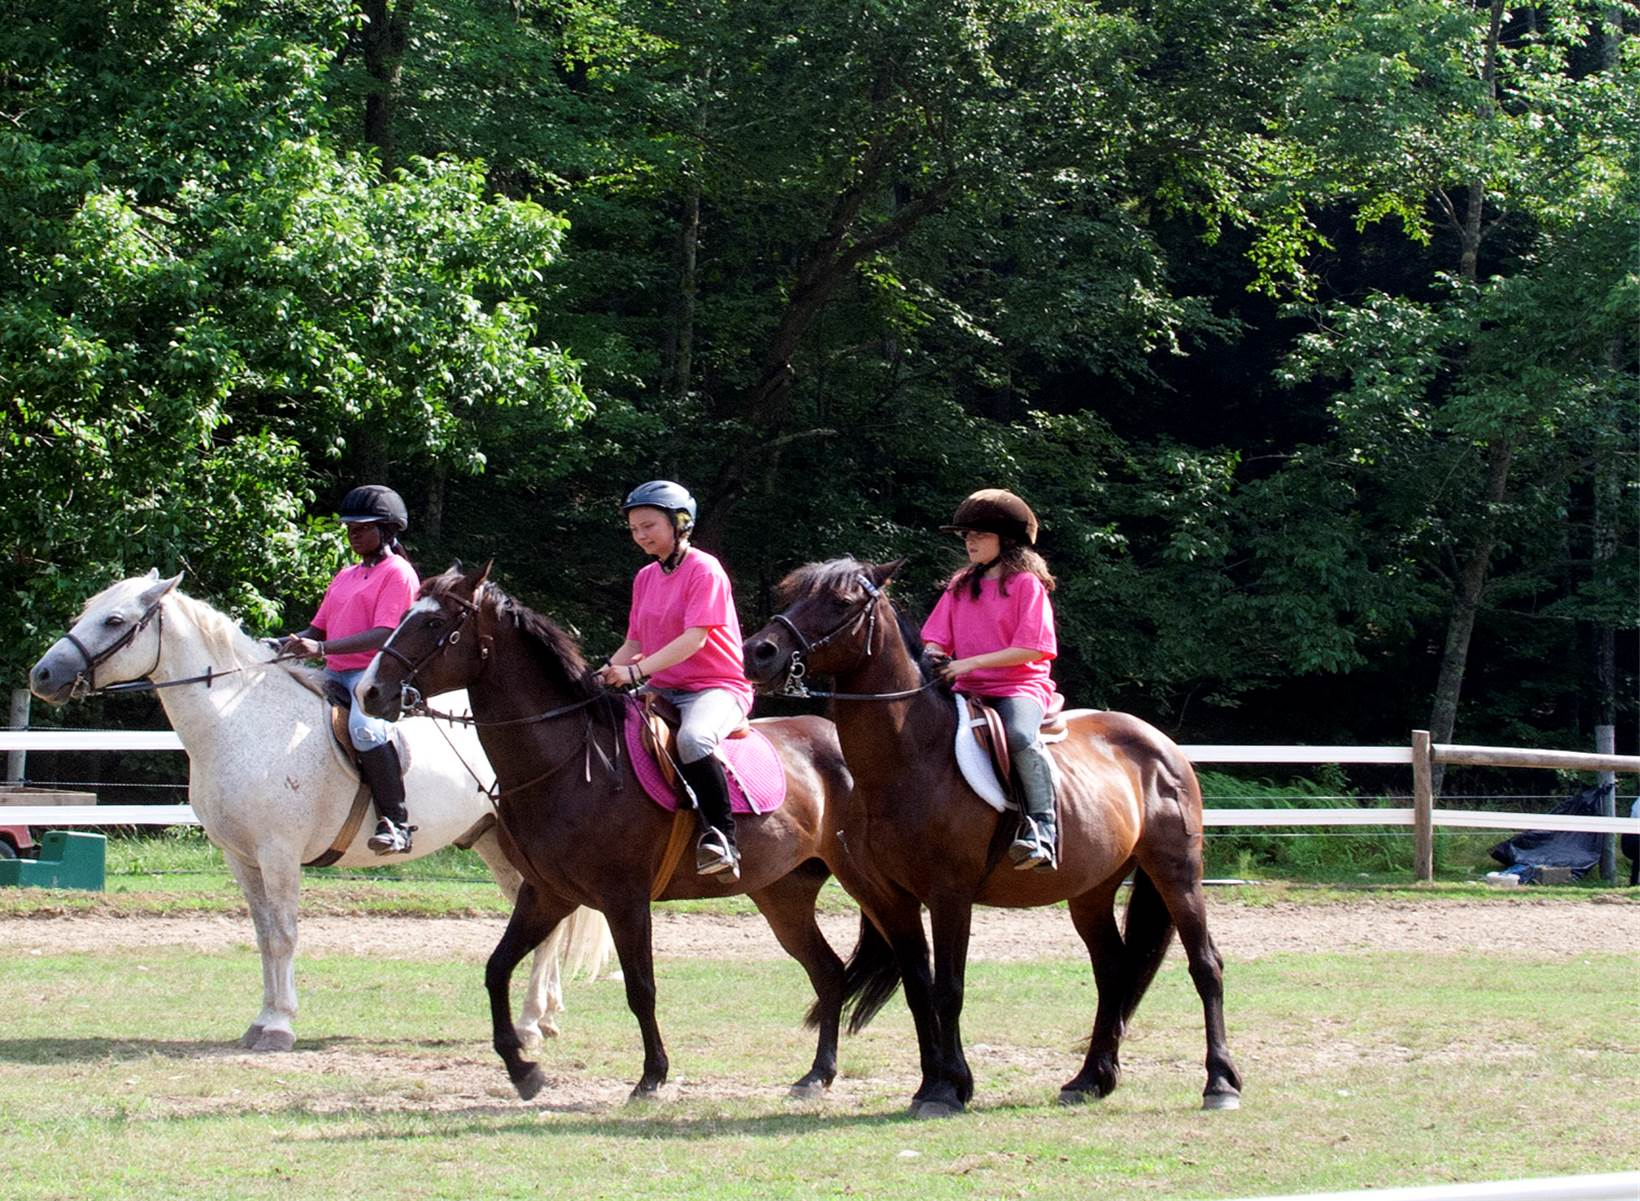 horse-riding-camp-pennsylvania